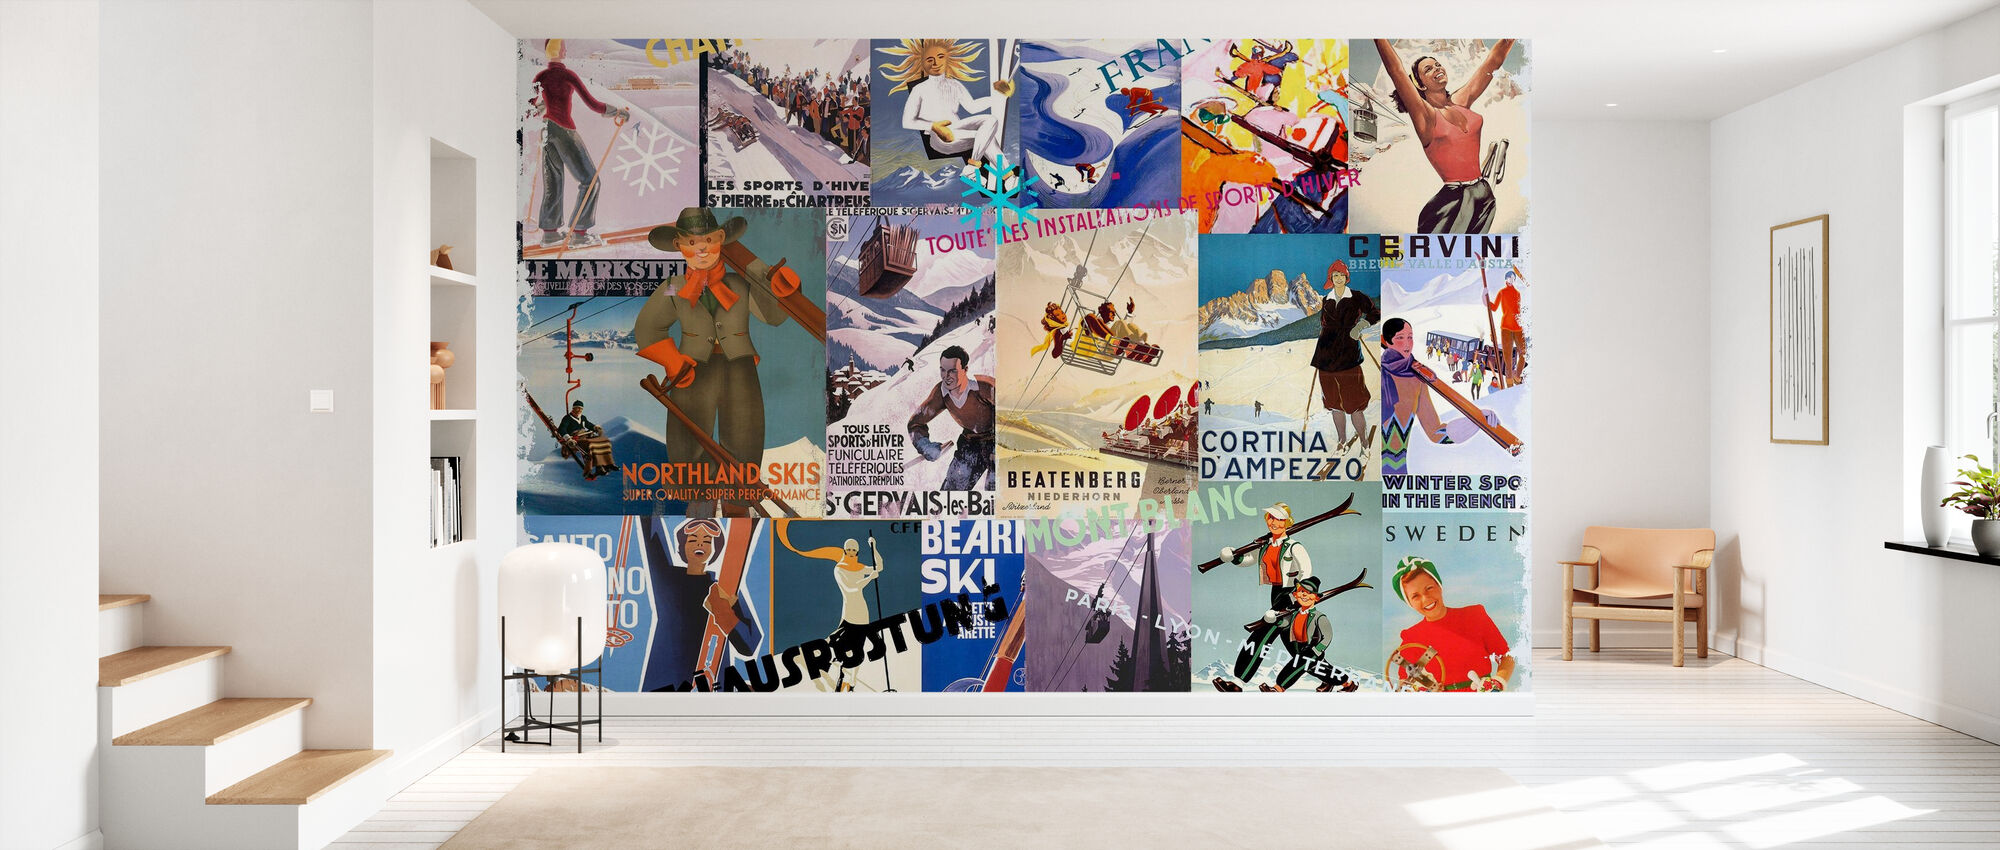 Ski Resorts Collage - Wallpaper - Hallway